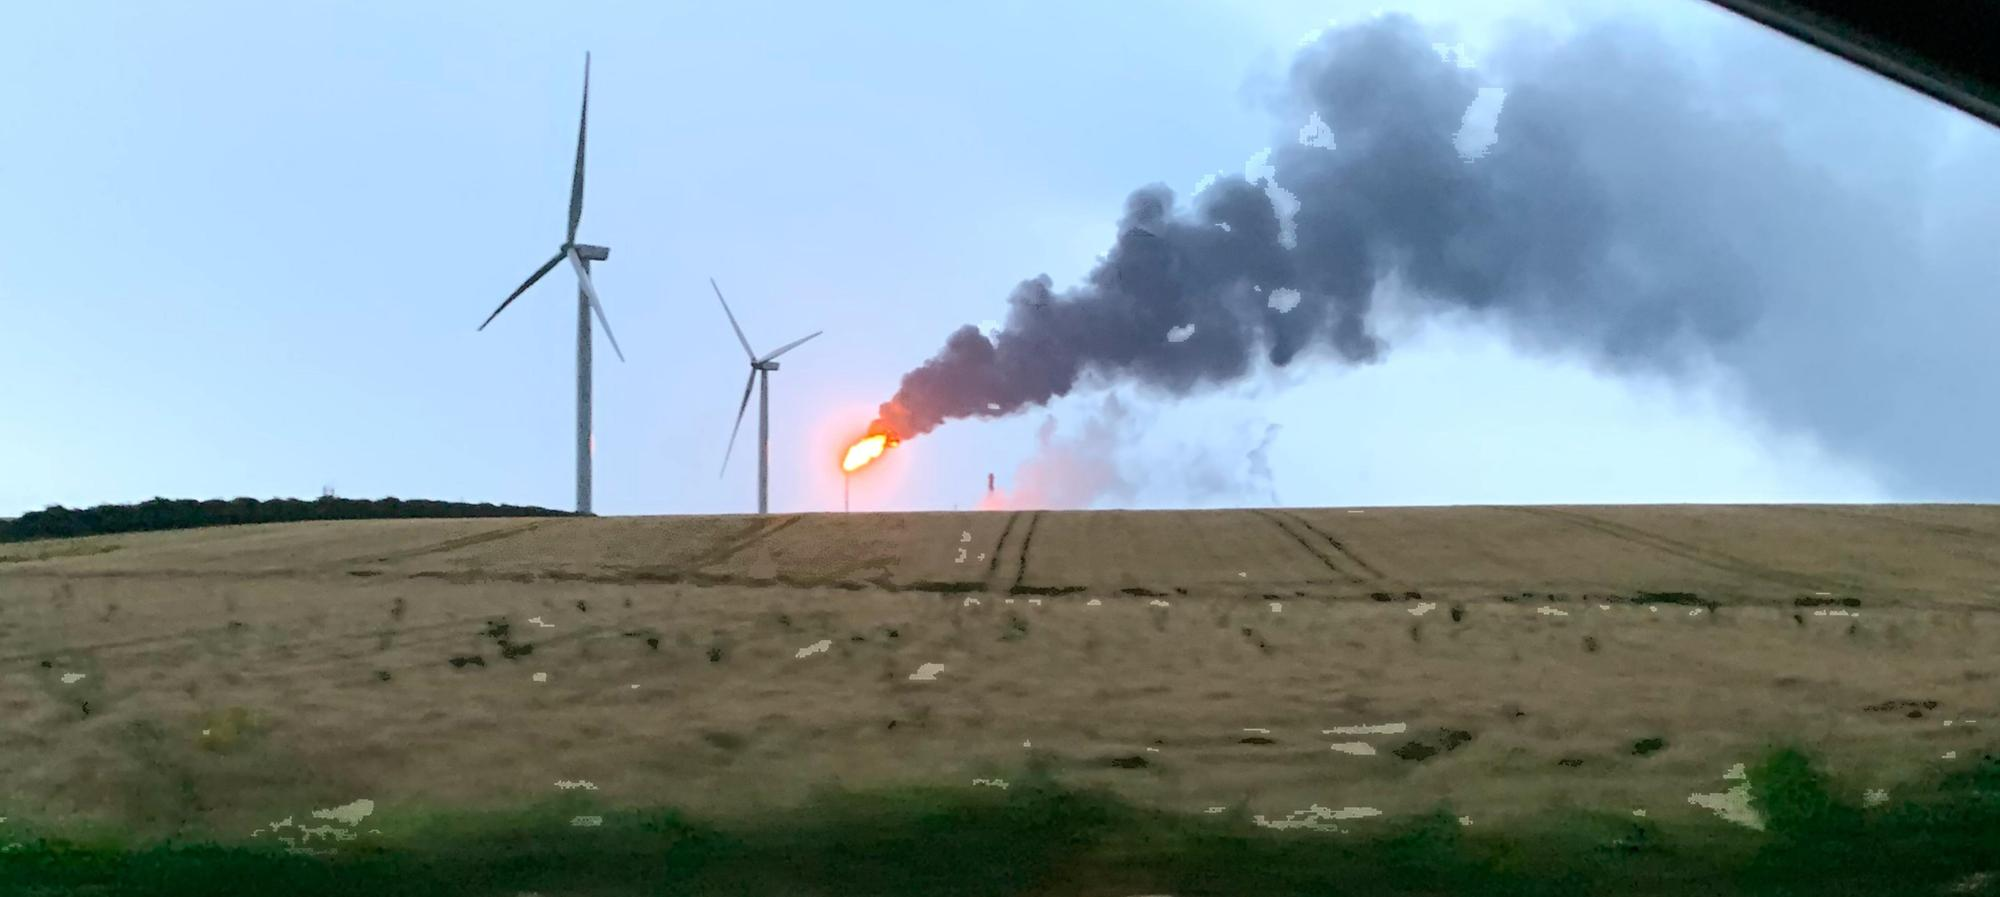 Environment officers monitor Mossmorran flare after severe weather